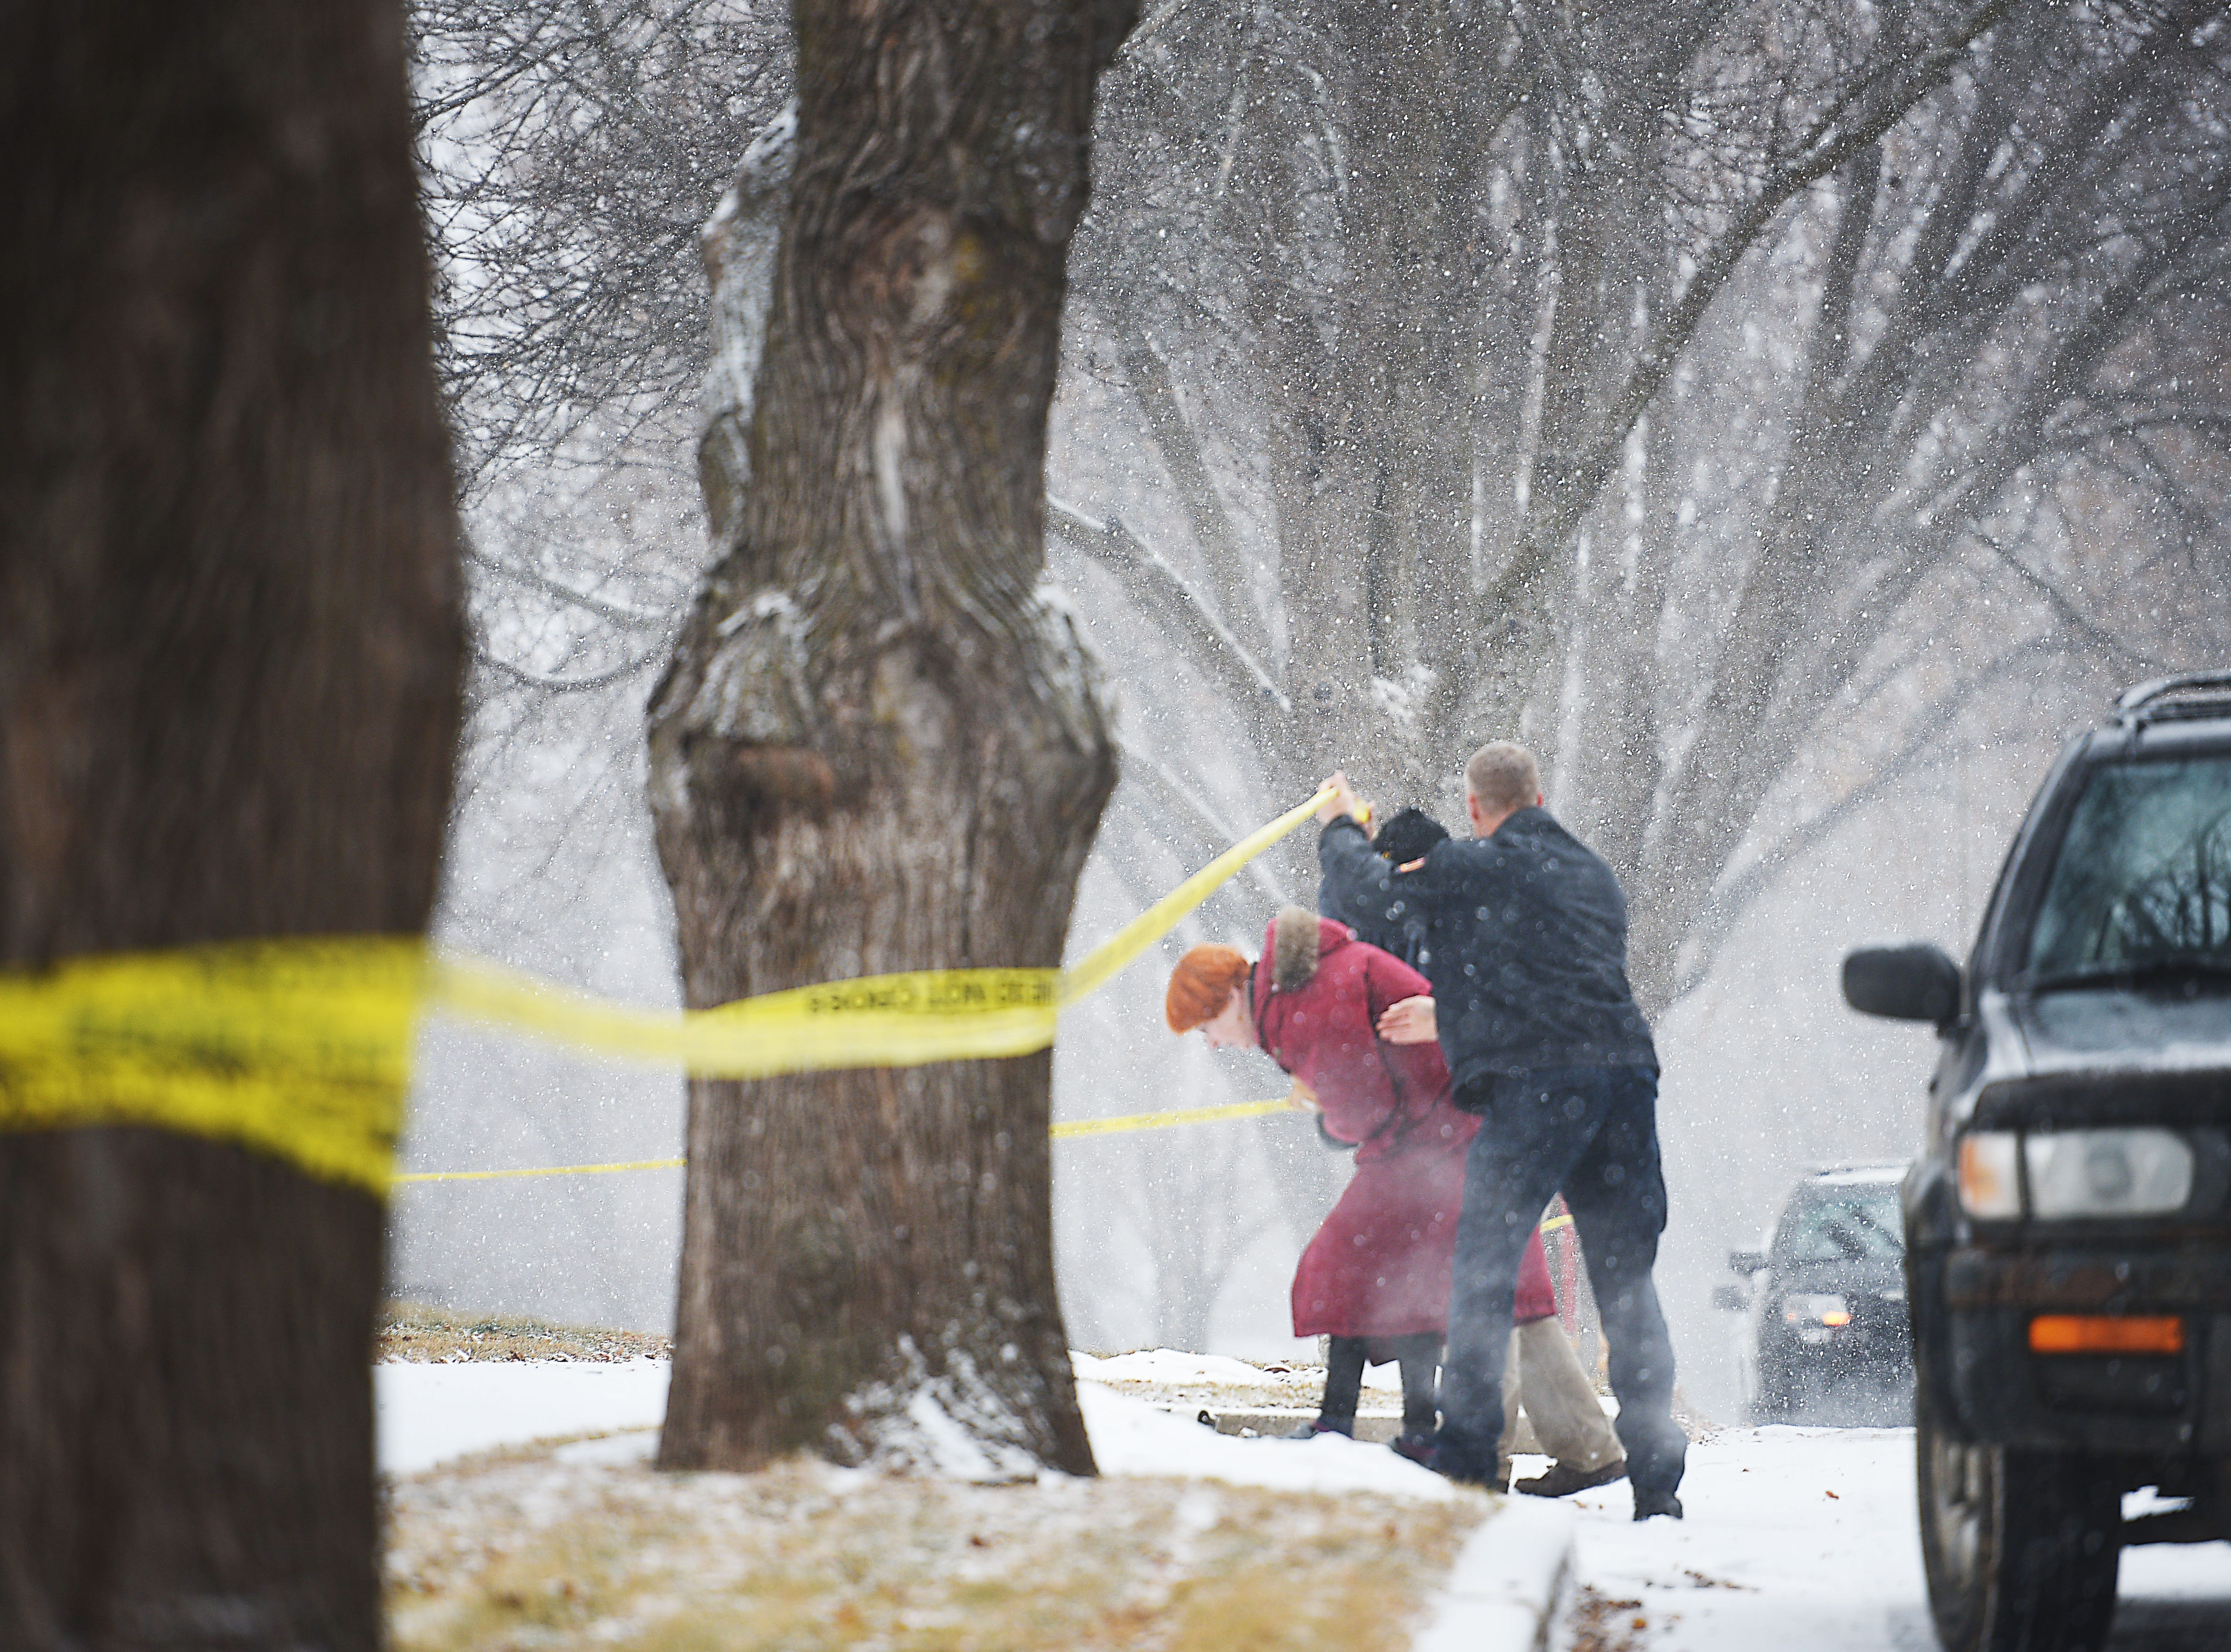 Homeowners Pat and Tim Brodkorb return to their home at 4213 S Birchwood Wednesday, Dec. 26, in Sioux Falls. A plane crashed into their backyard Tuesday night. Nearby homes were still evacuated.